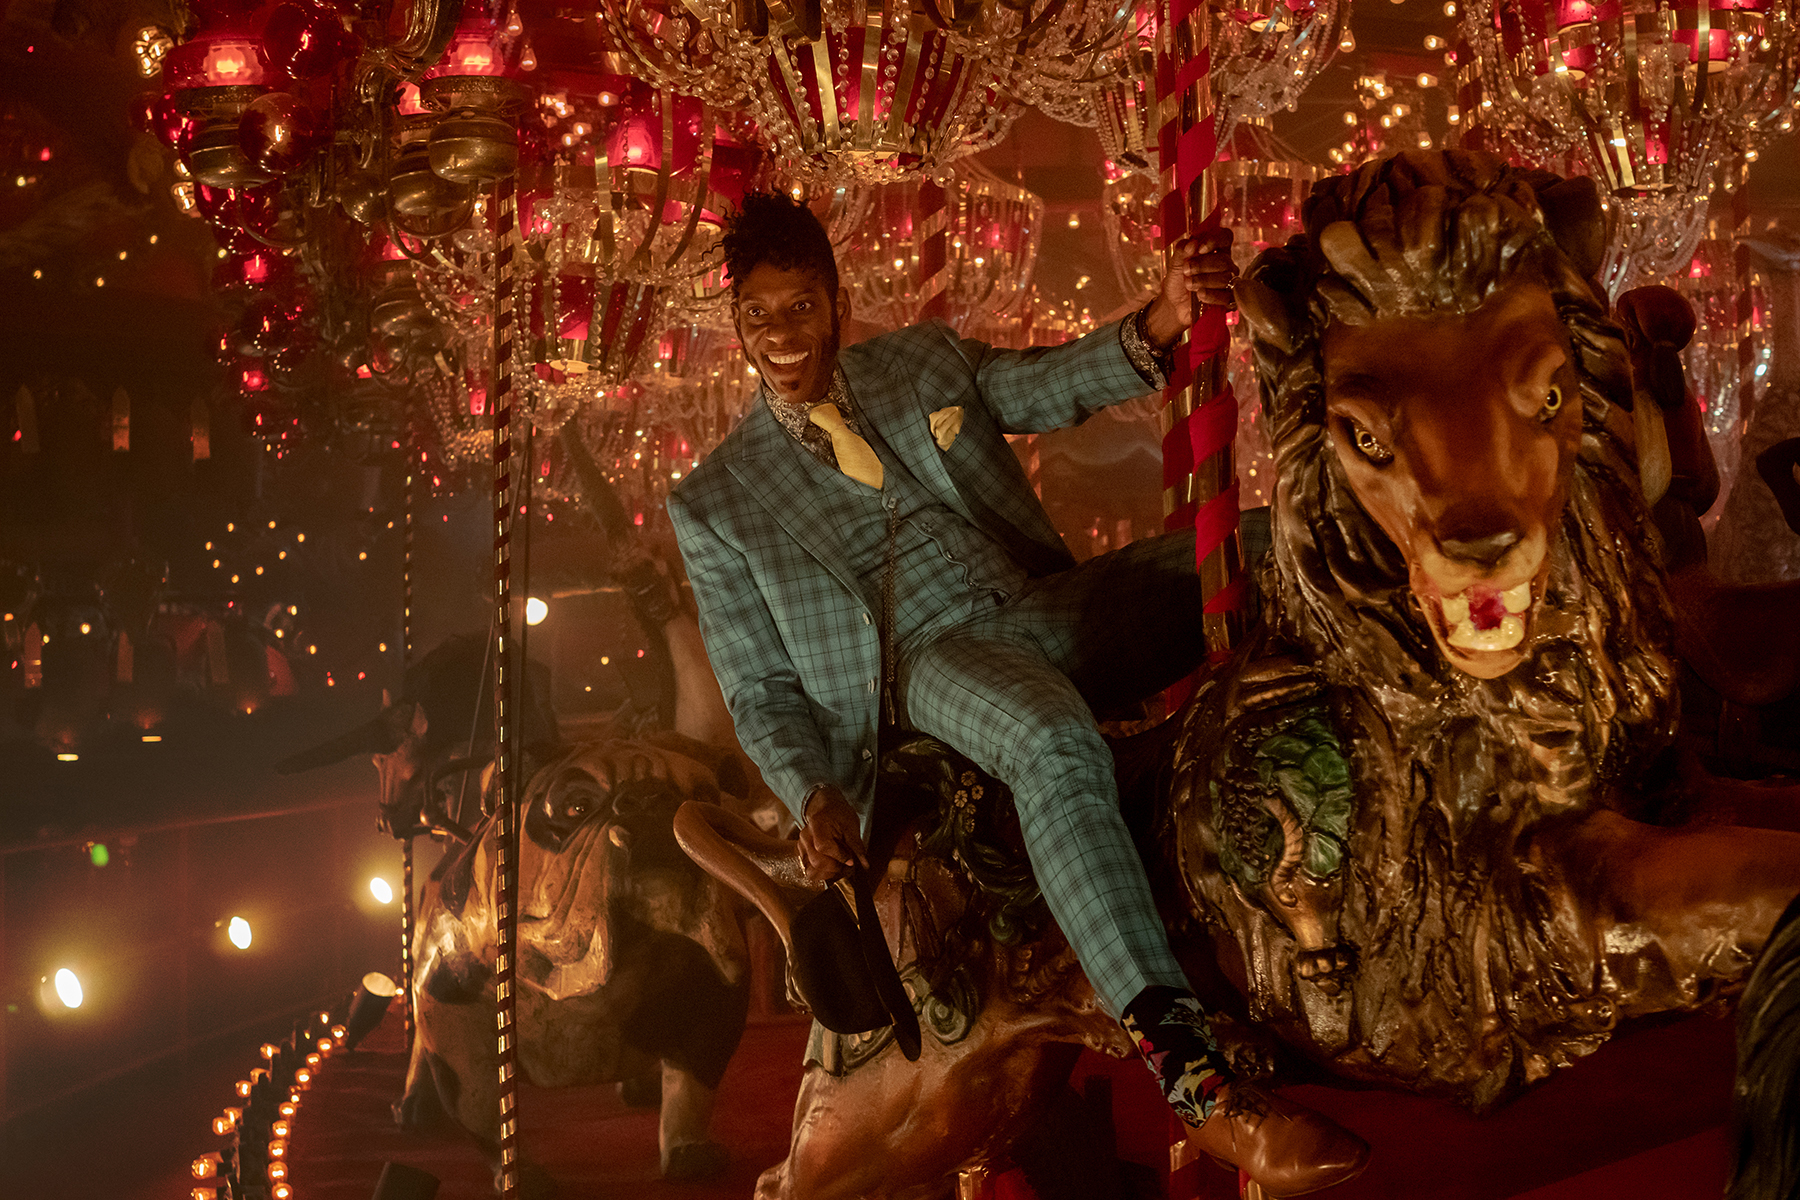 American Gods season 2 episode 1 review: A hollow return